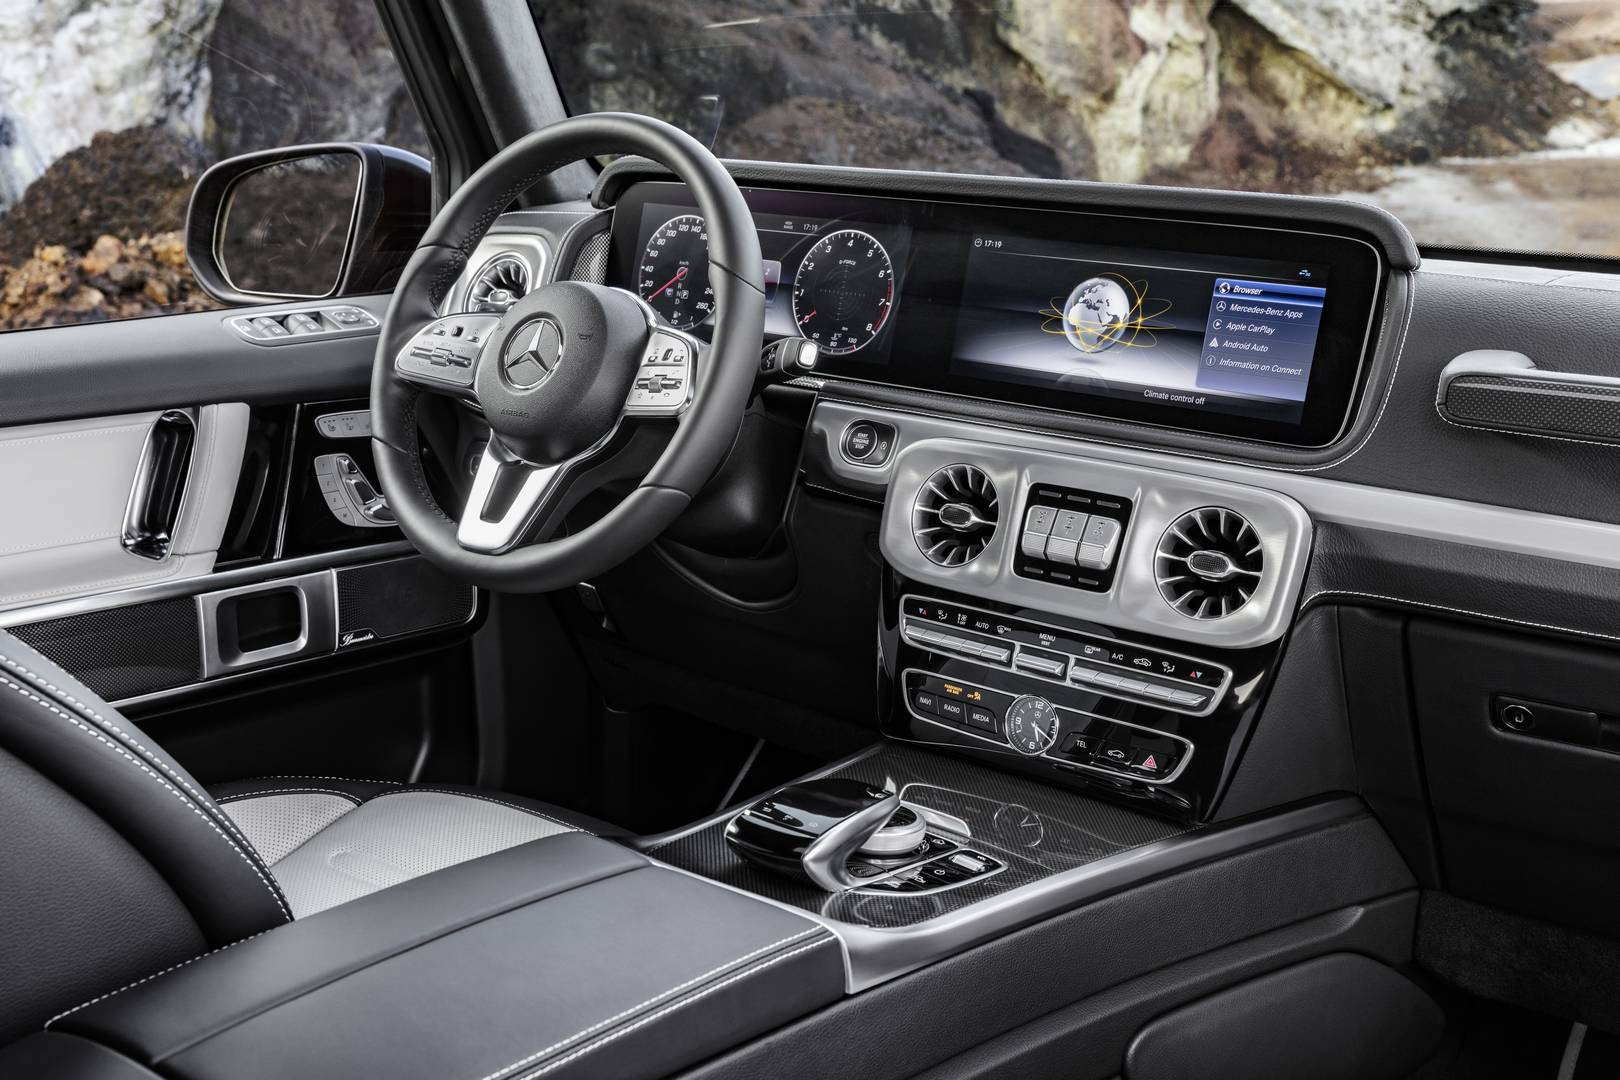 Mercedes G-Class Interior Revealed, All-New SUV Debuts In Detroit